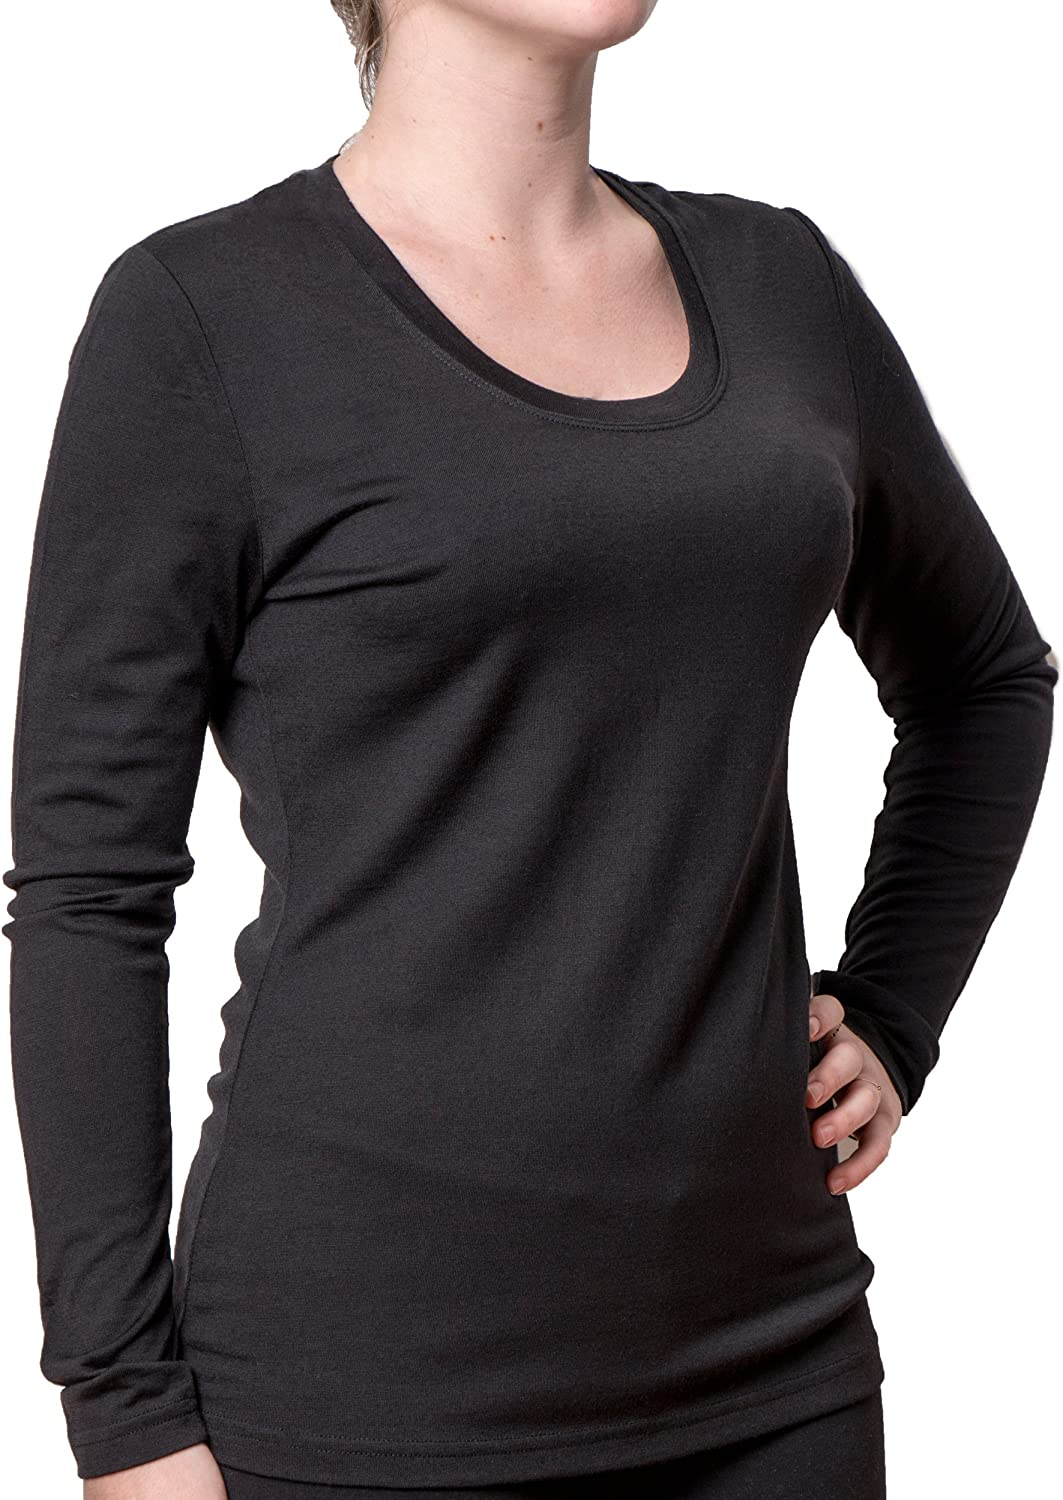 Cold Snap Women's Merino, Long Sleeve Baselayer, Midweight, 210 GSM, 100% Merino Wool - Select Your Size